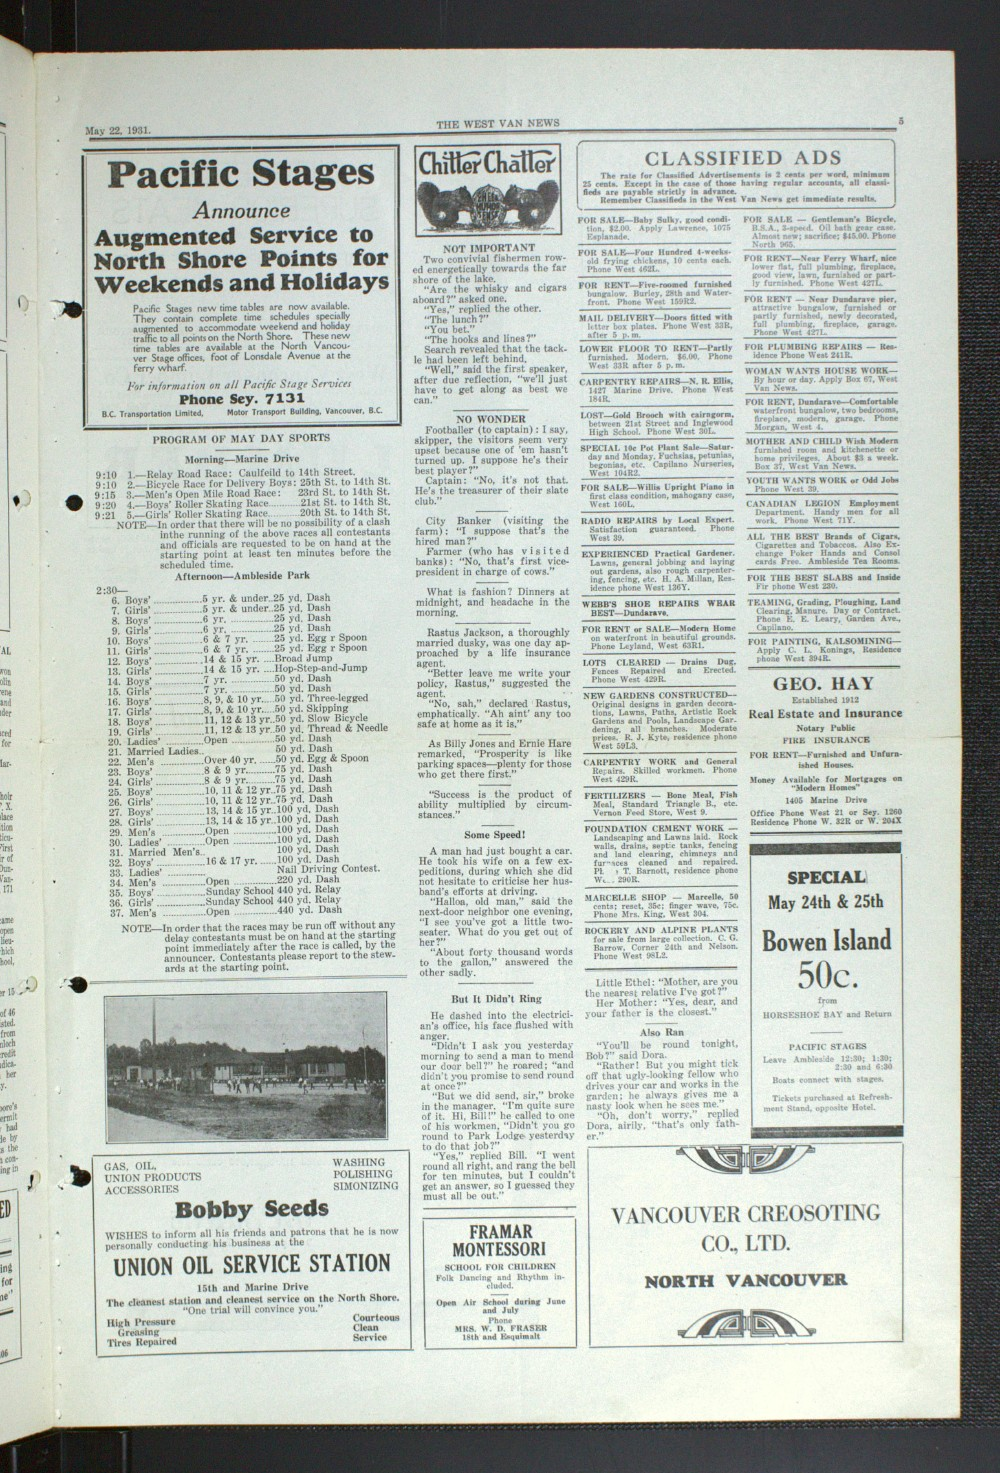 West Van. News (West Vancouver), 22 May 1931